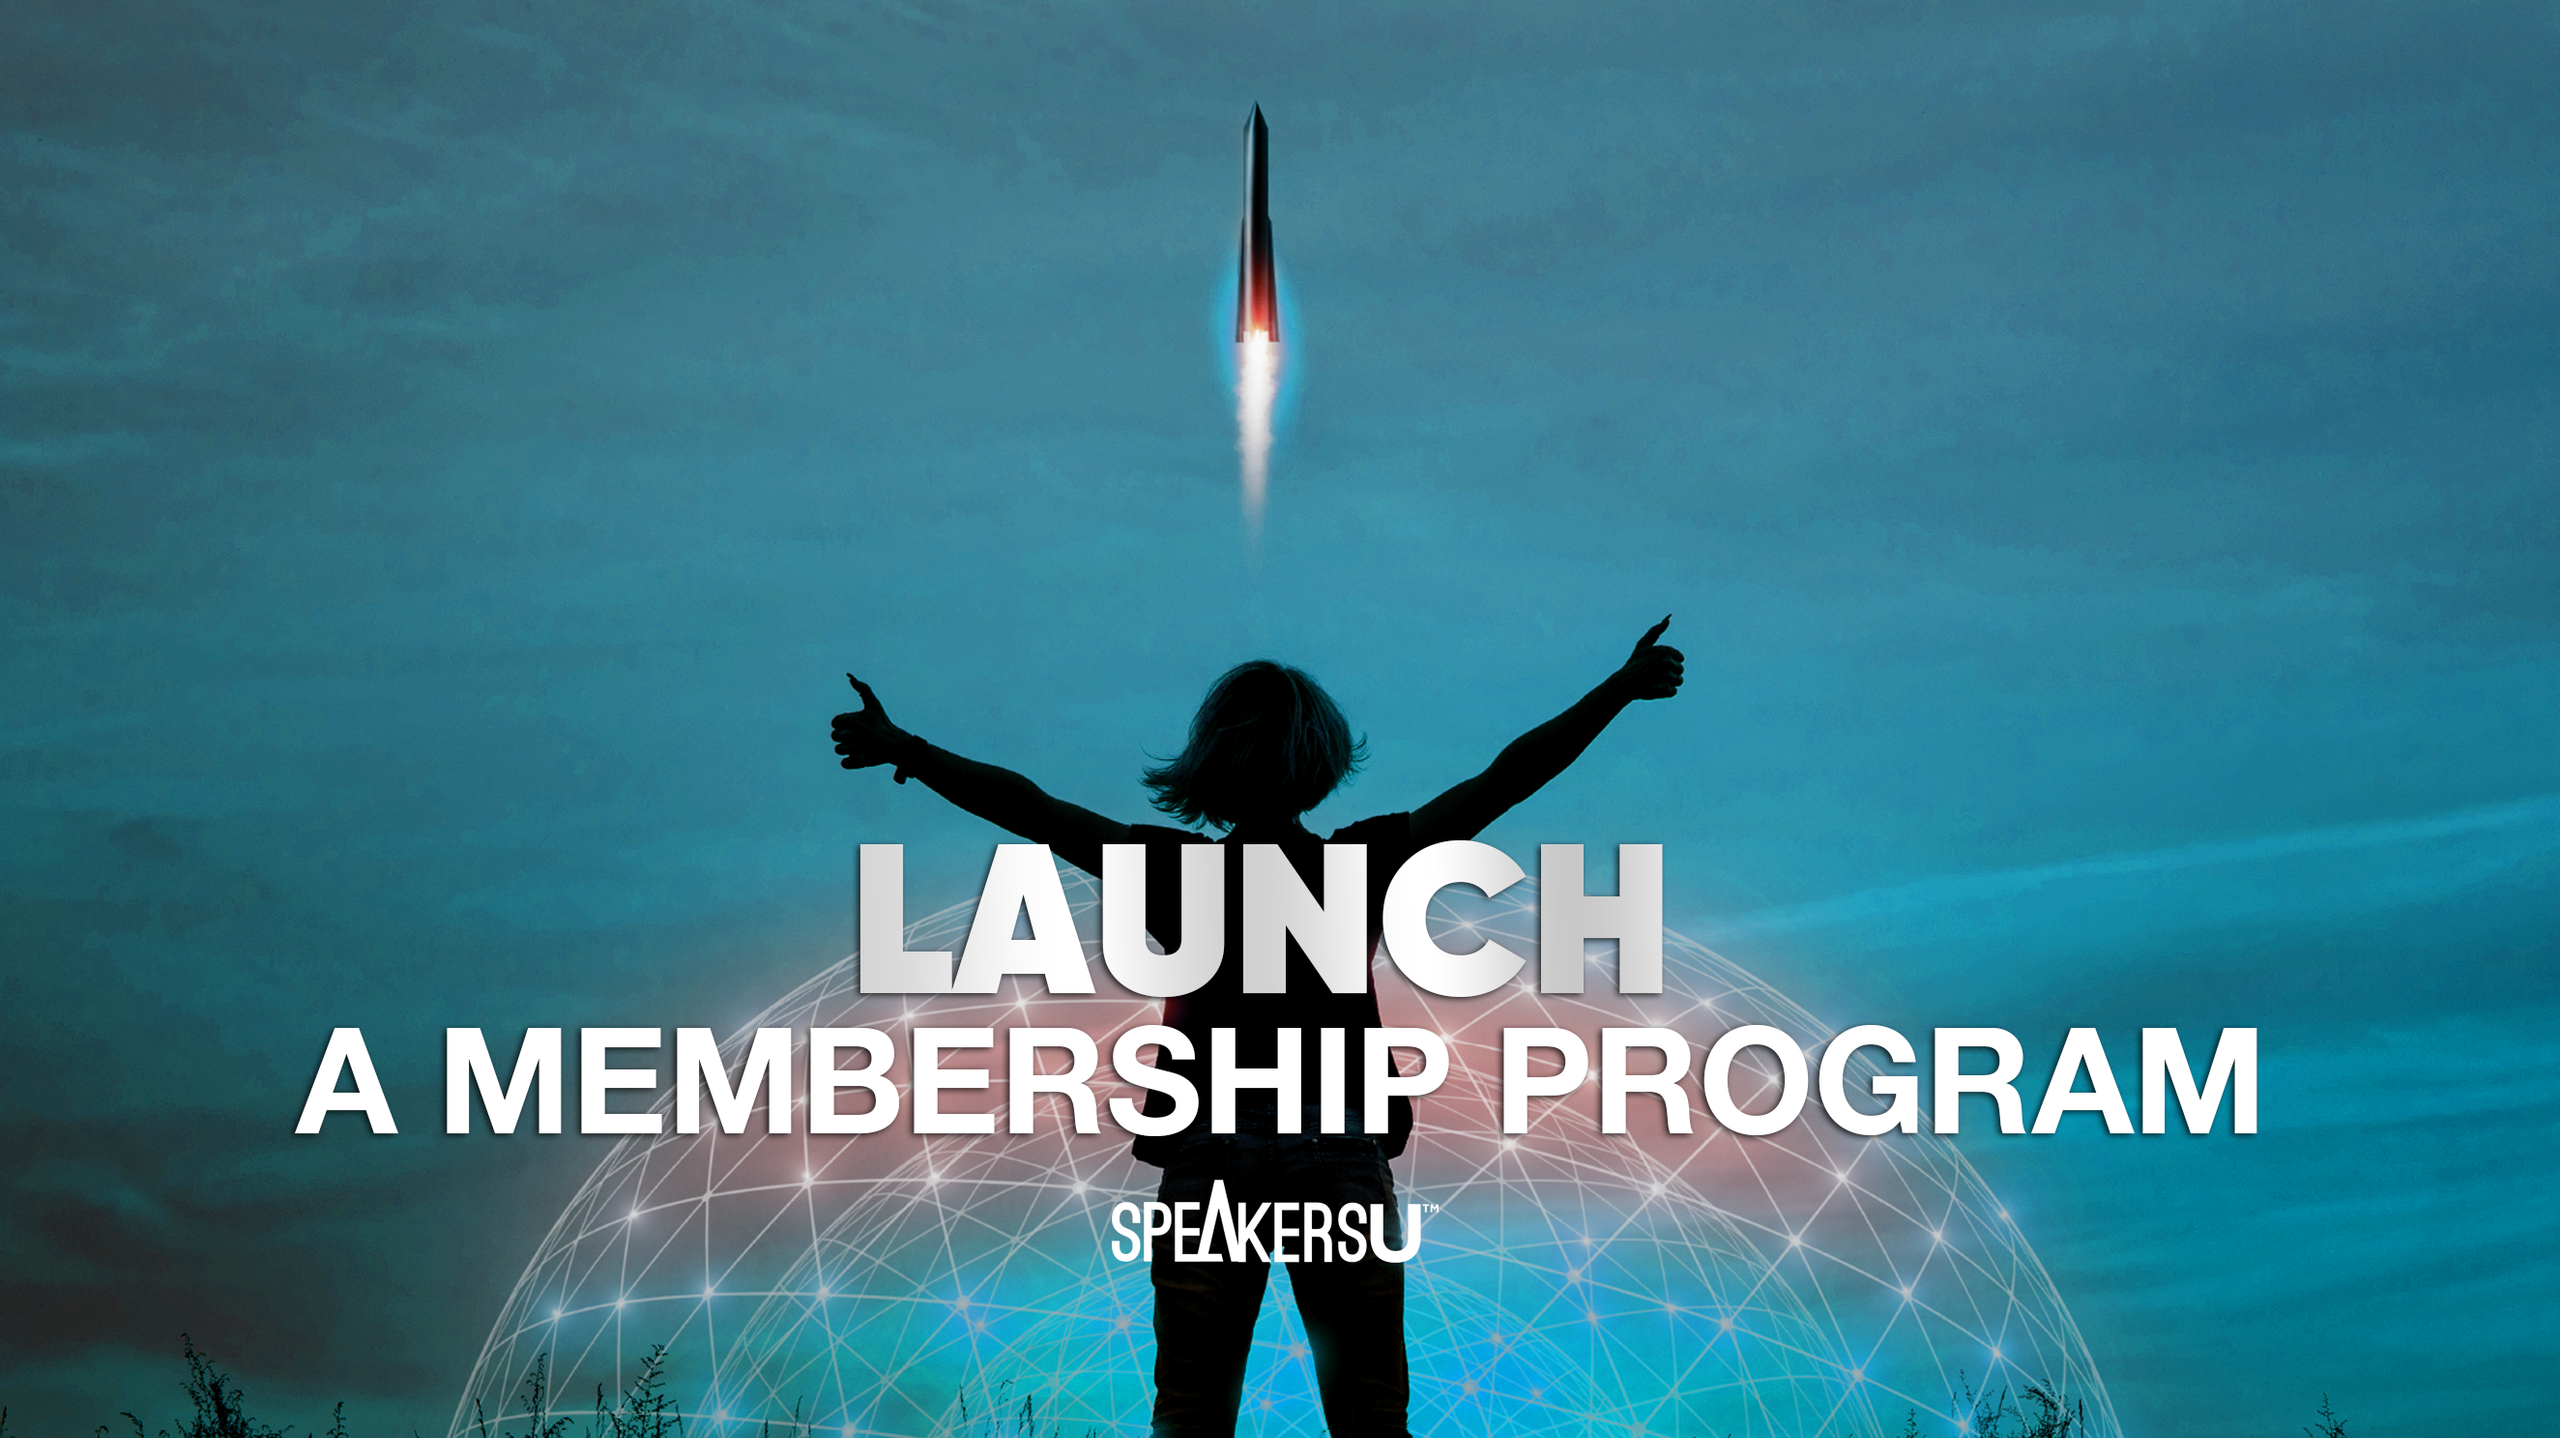 How To Launch A Membership Program